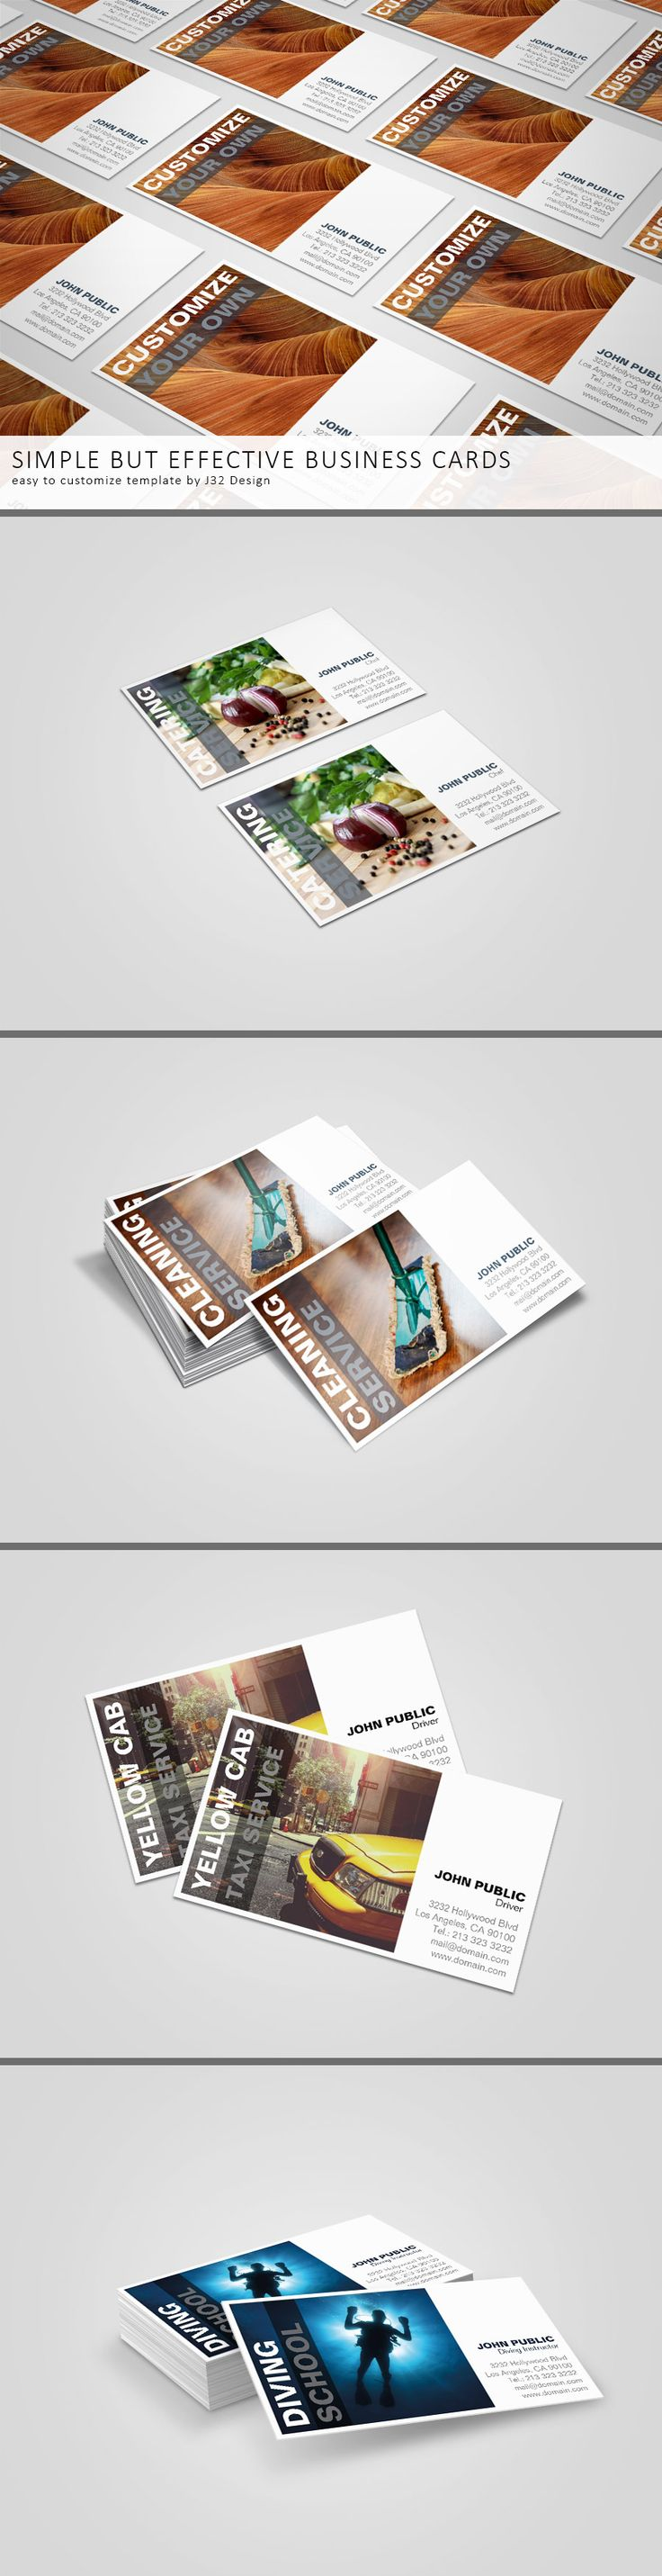 1439 best cool business cards on pinterest images on pinterest 1439 best cool business cards on pinterest images on pinterest advertising cards and cleanses magicingreecefo Gallery